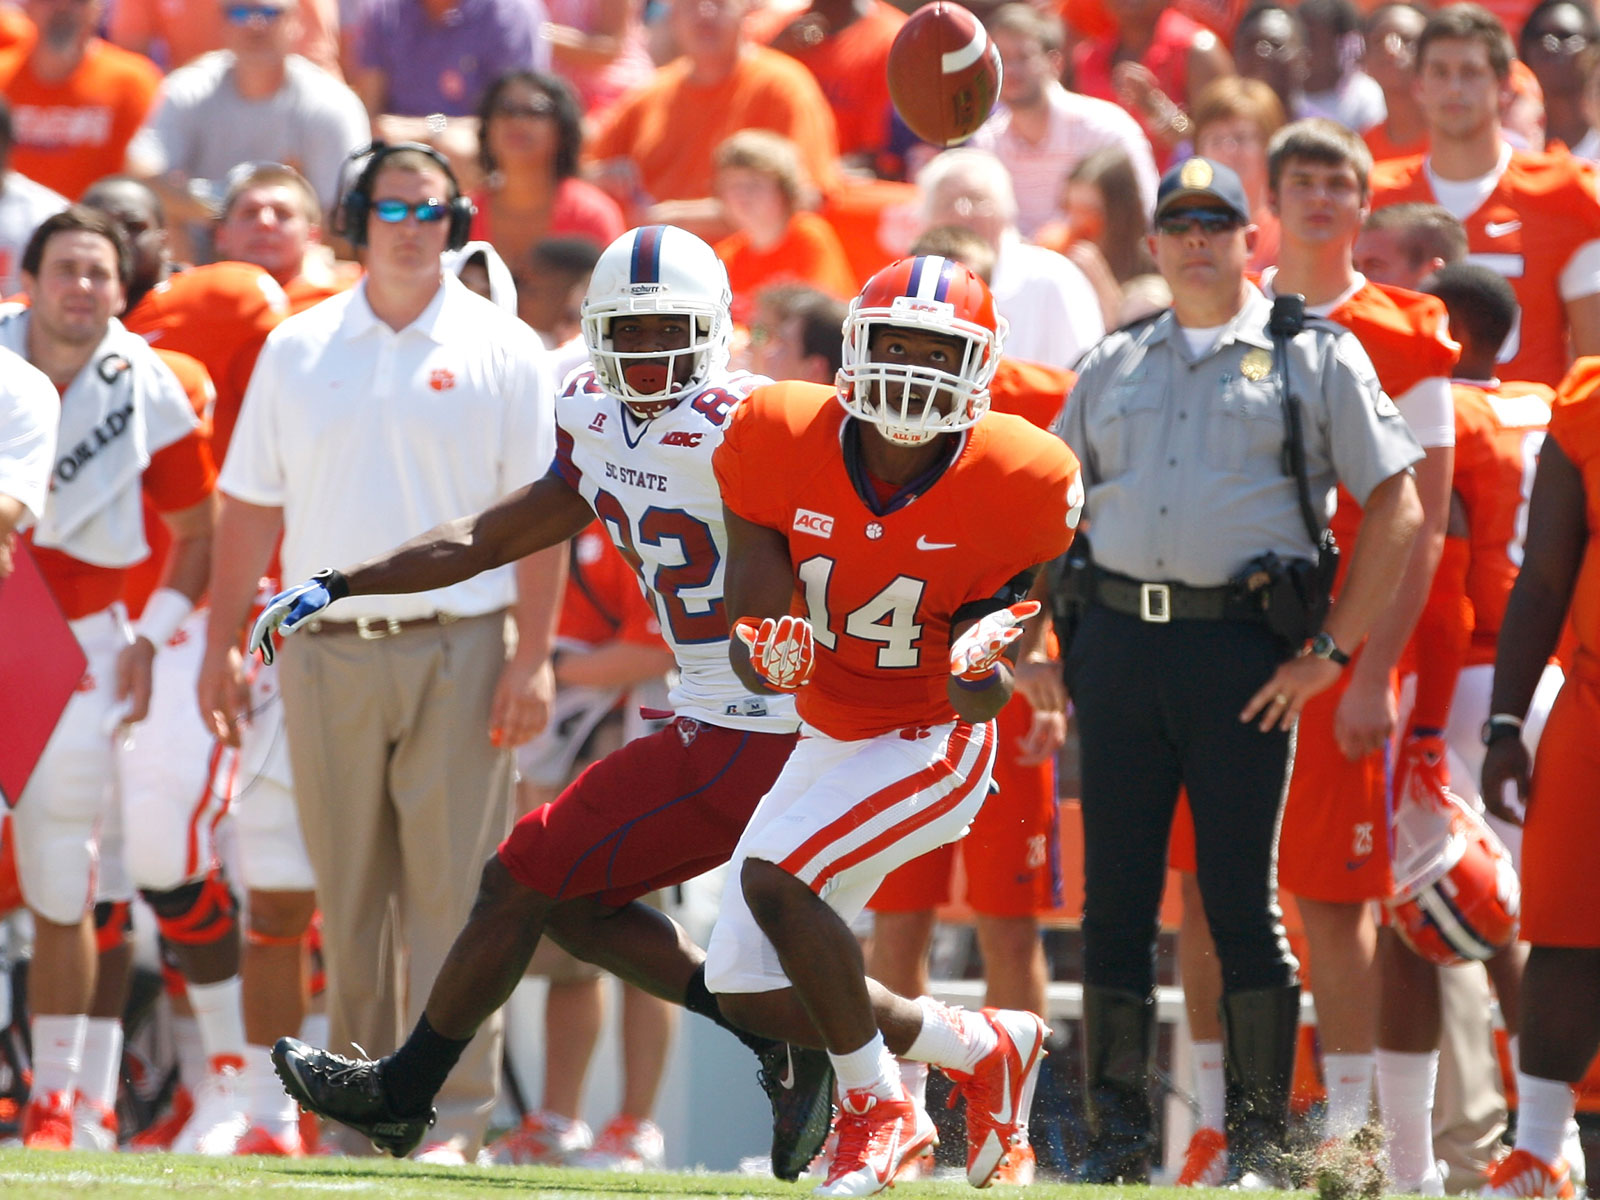 Martin Jenkins played defensive back for Clemson